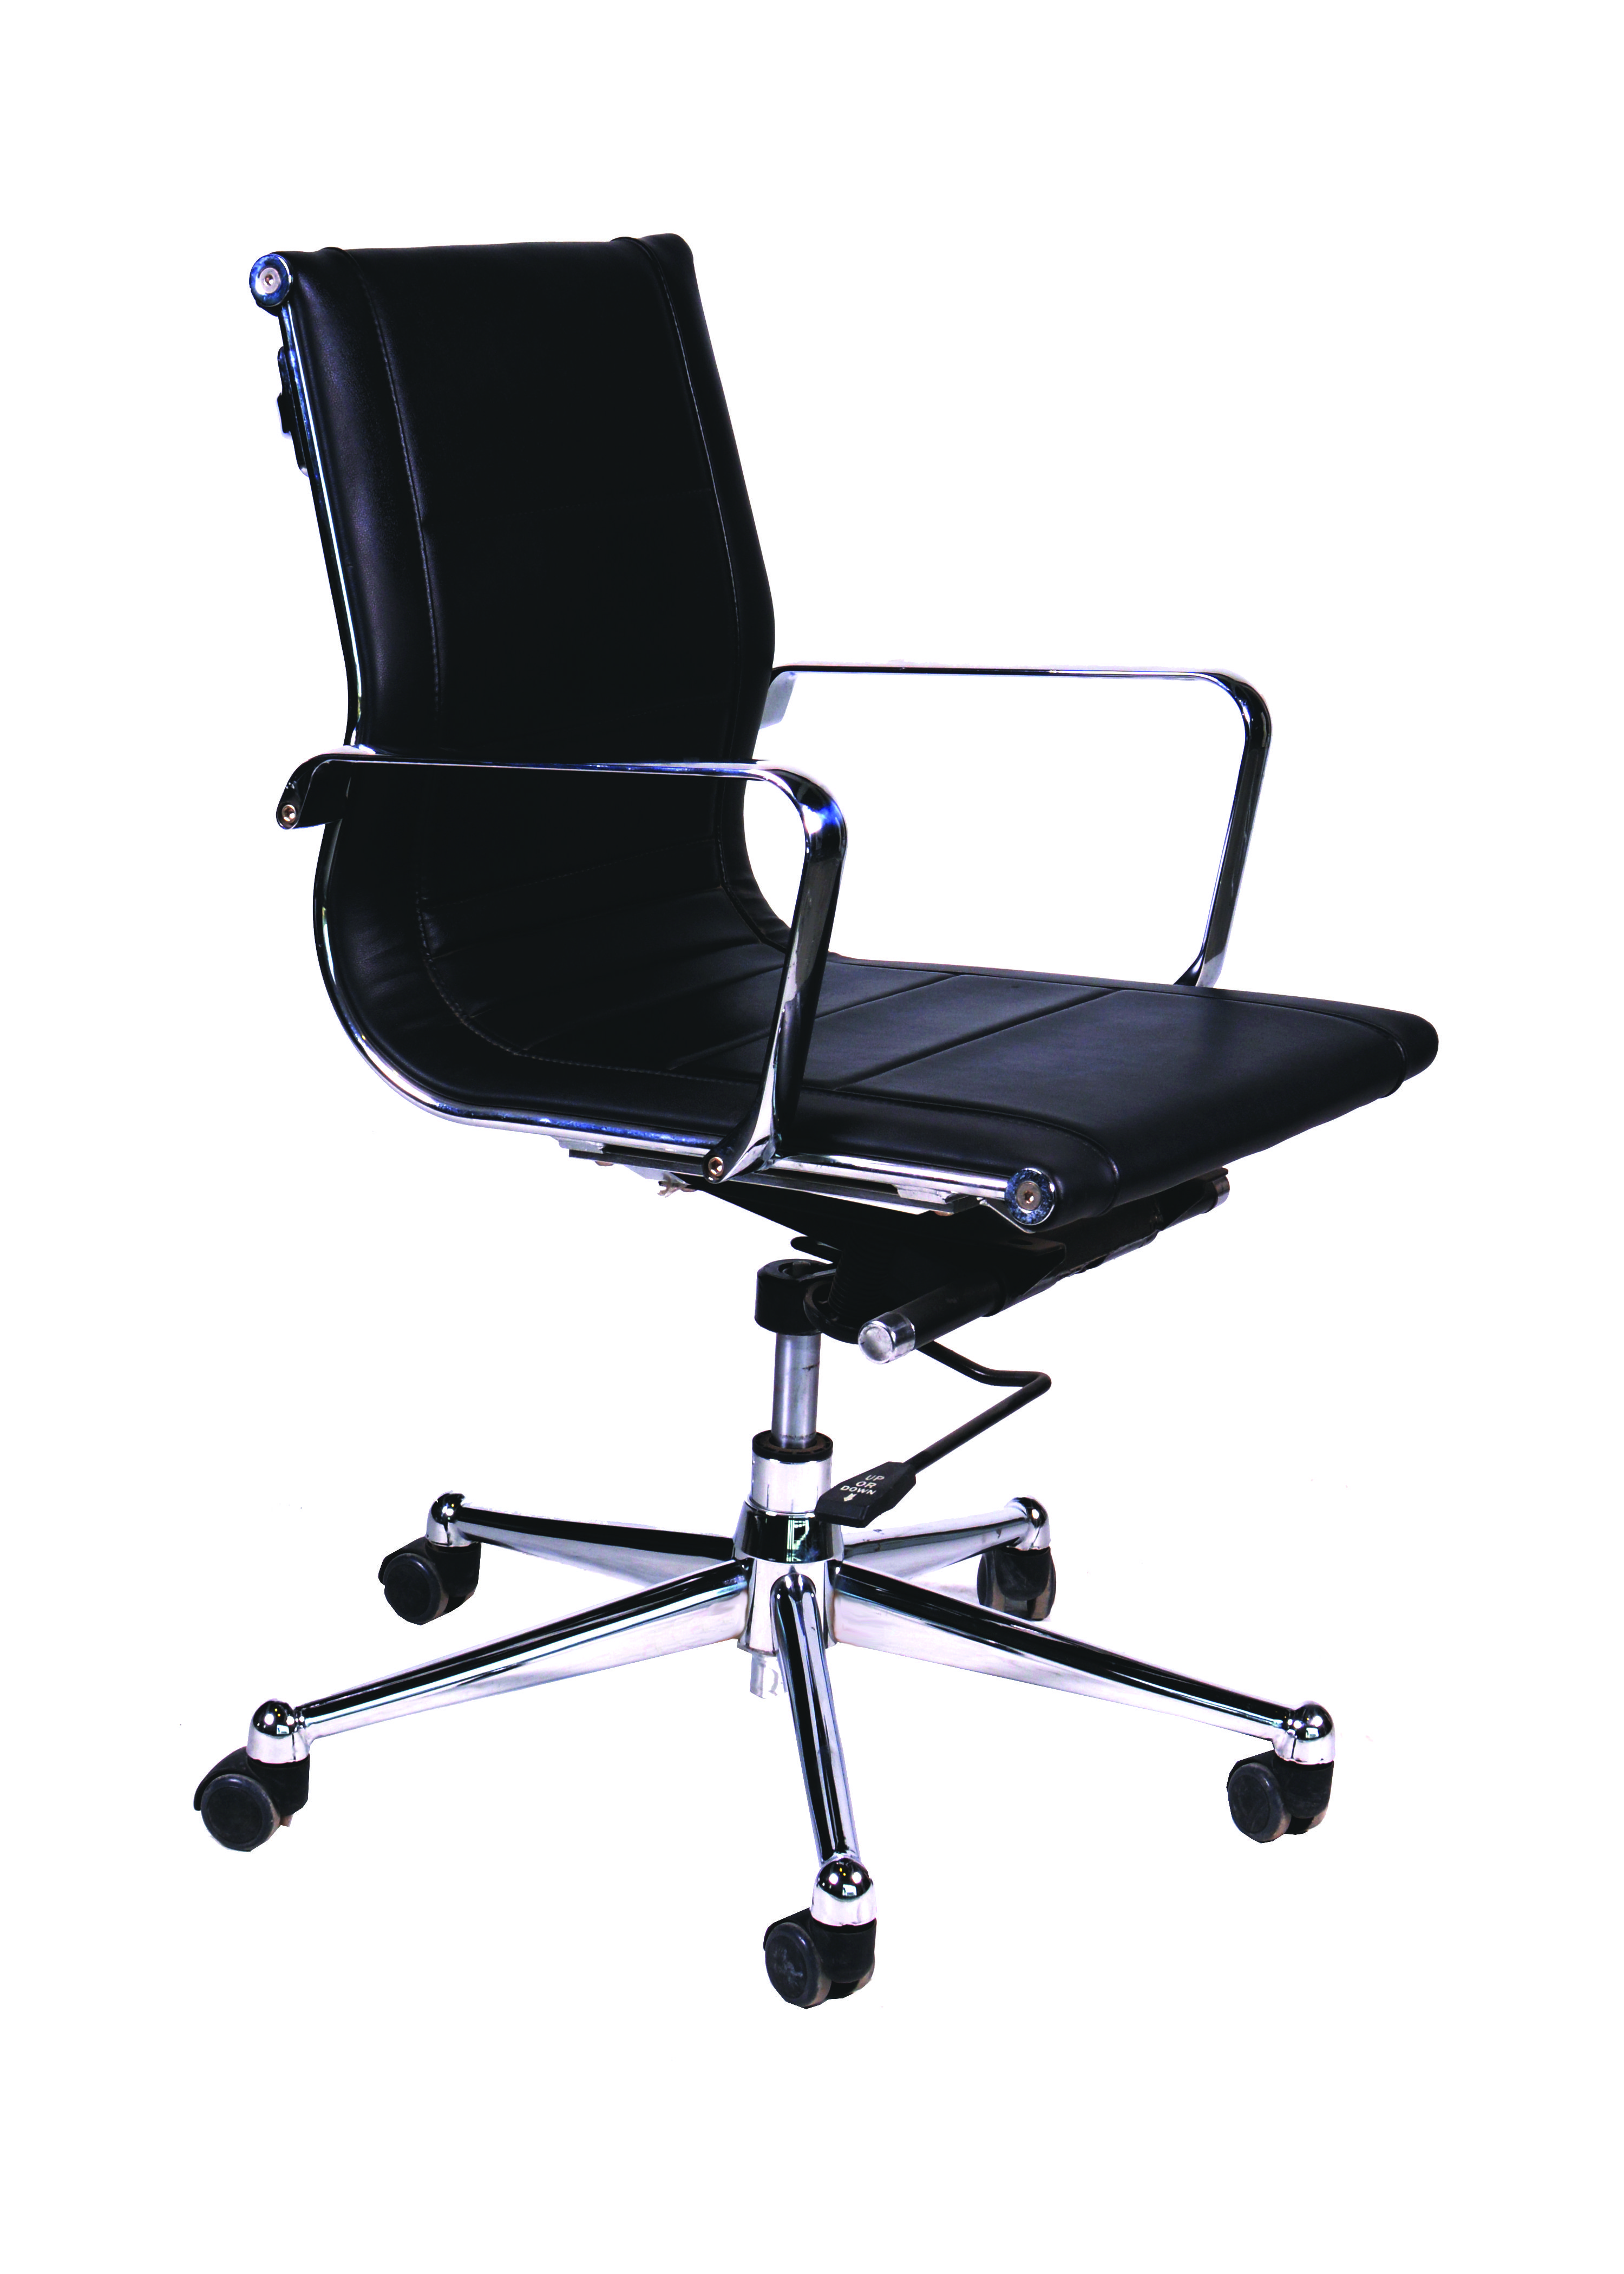 Comfy Office Chairs Stylish And Comfy Only At Workman Office Chairs